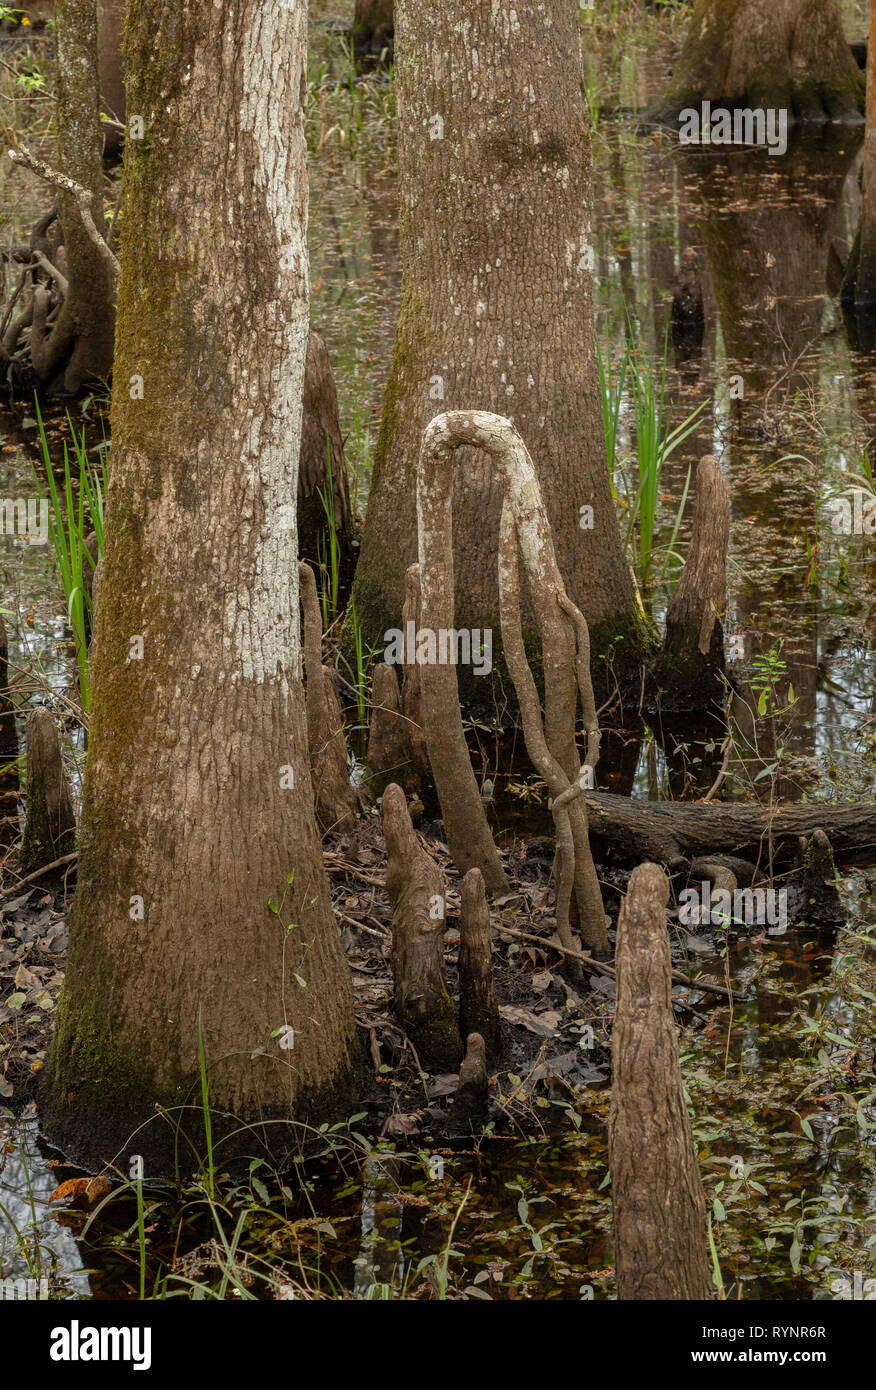 Bald Cypress, Taxodium distichum, knees in woodland in Lower Suwannee National Wildlife Refuge, West Florida. Stock Photo